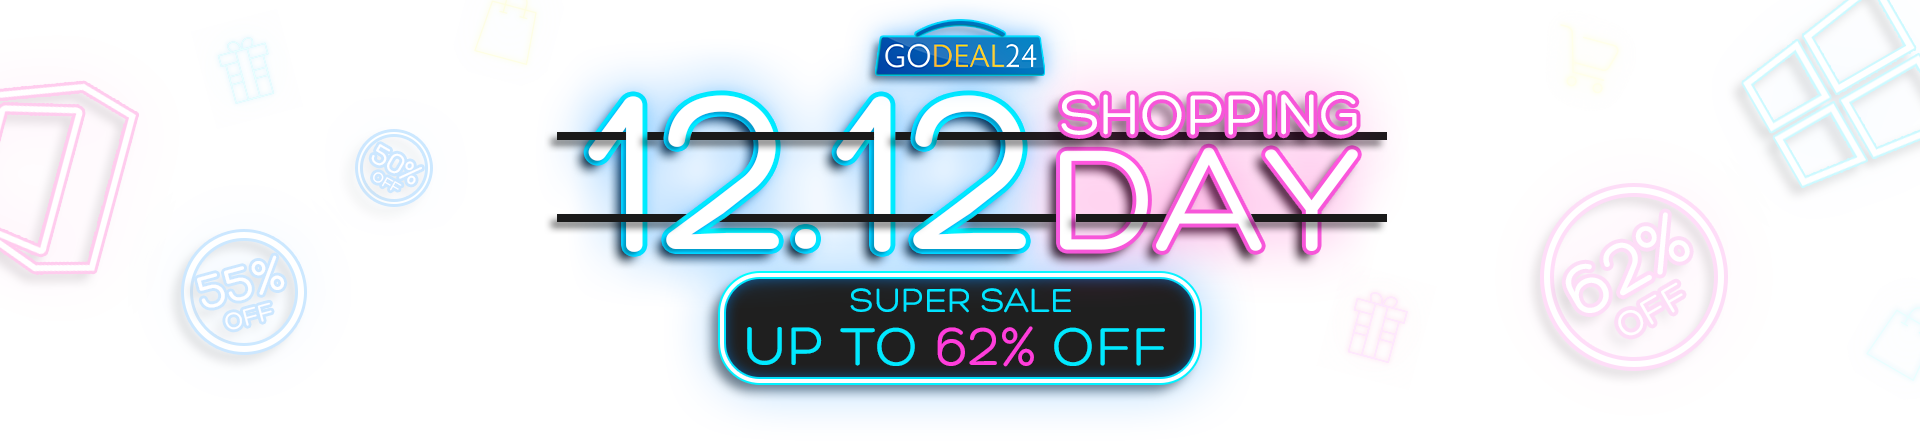 Shopping Day Super Sale